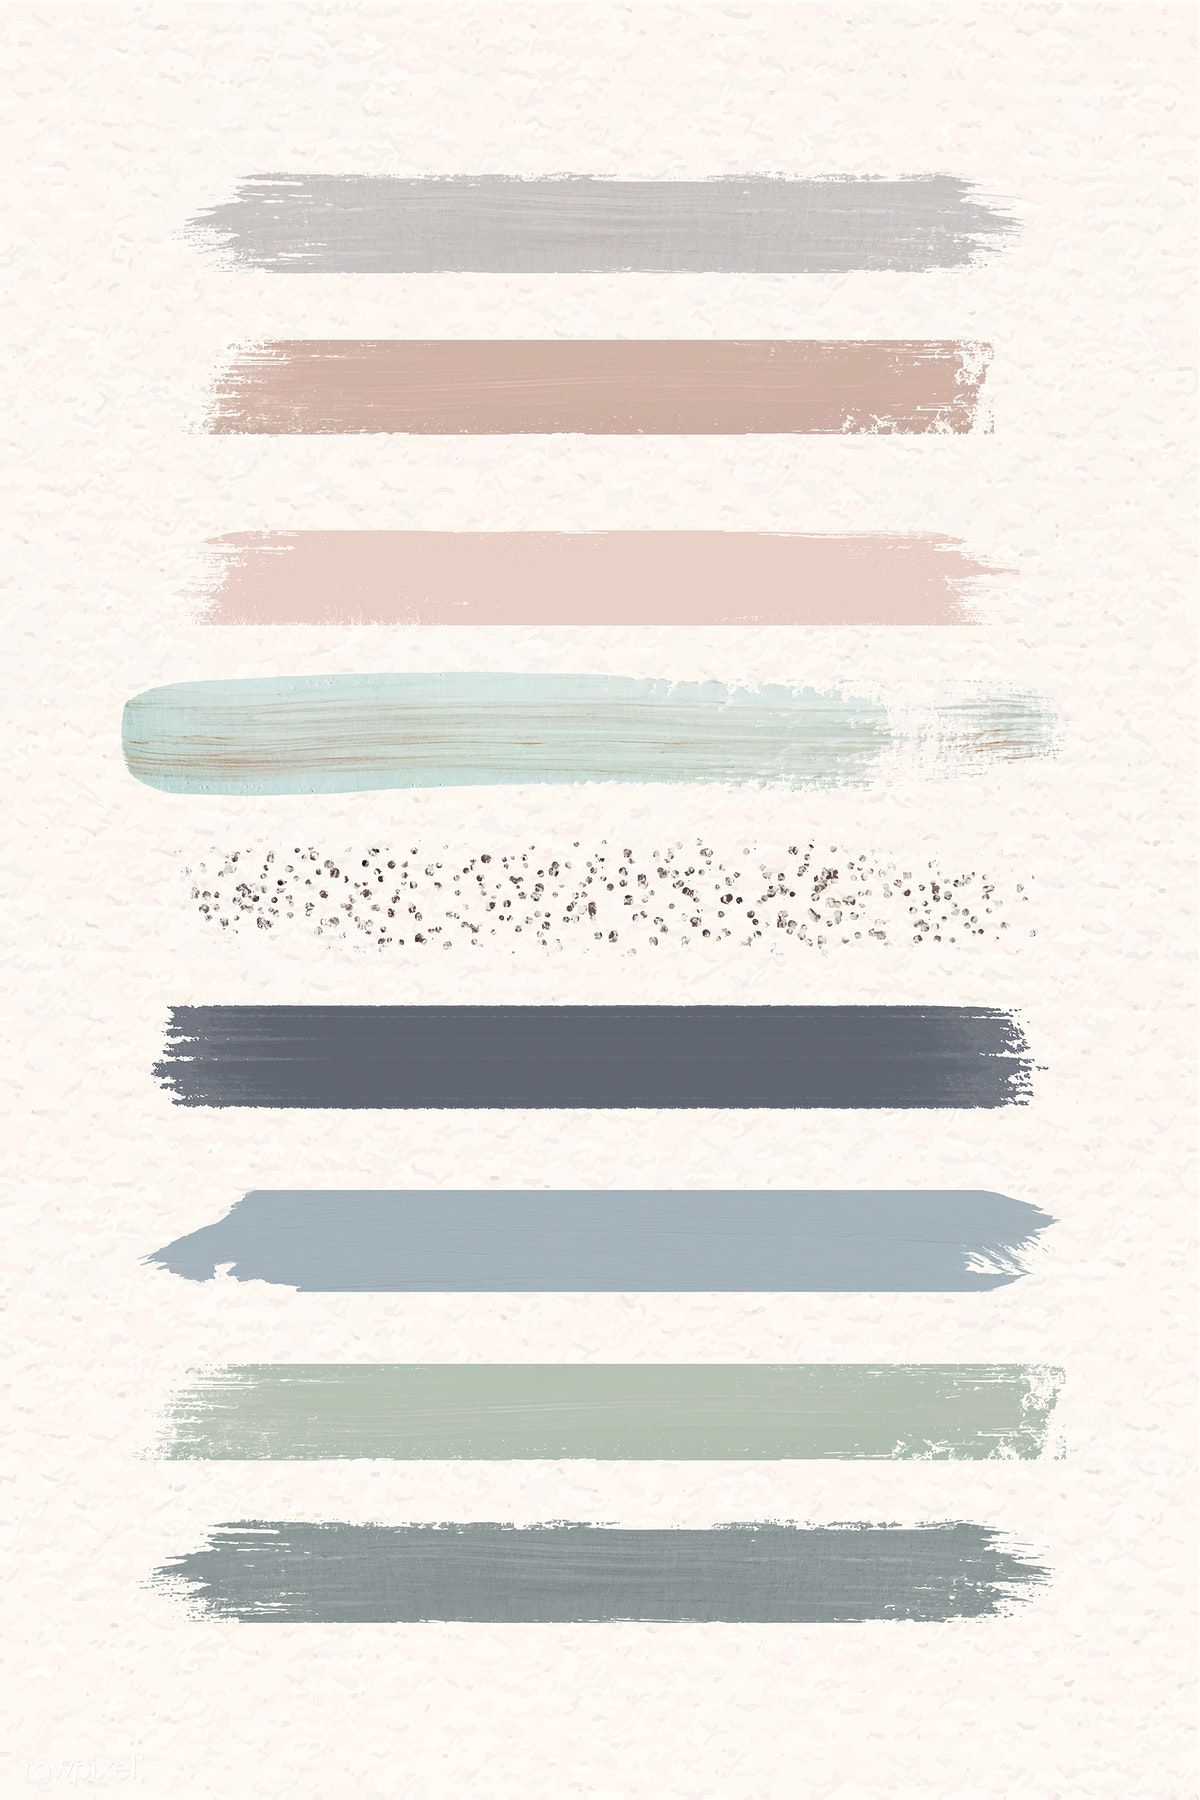 Pastel Brush Strokes Vector Collection Premium Image By Rawpixel Com Marinemynt In 2020 Brush Stroke Vector Abstract Brush Strokes